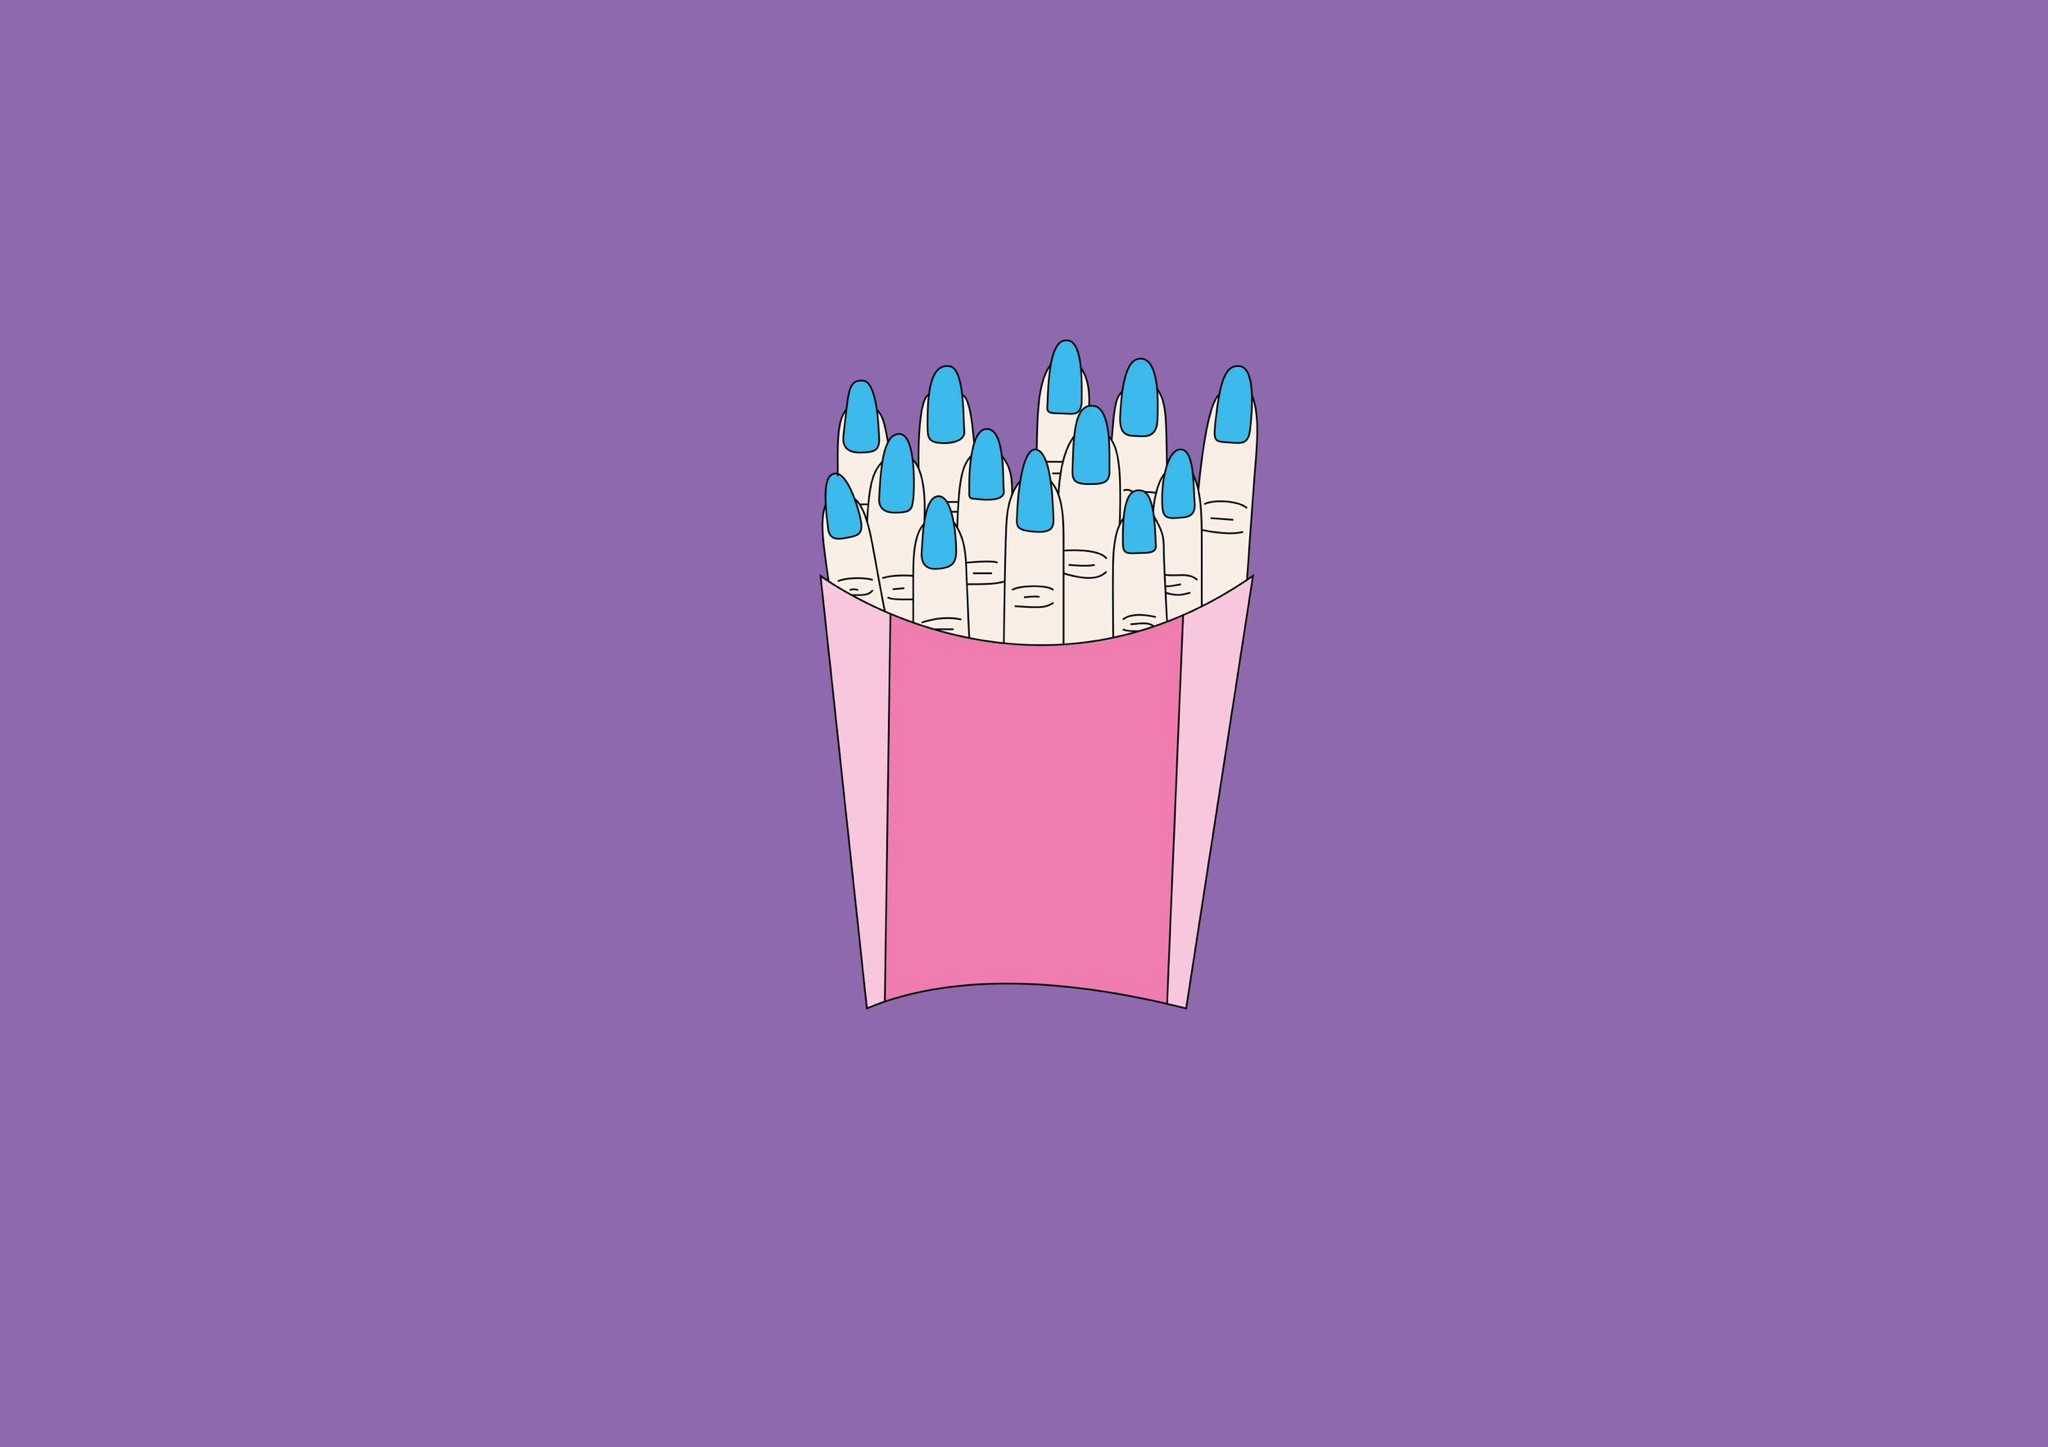 The colorful and desecrating illustrations by Chloe Bennett